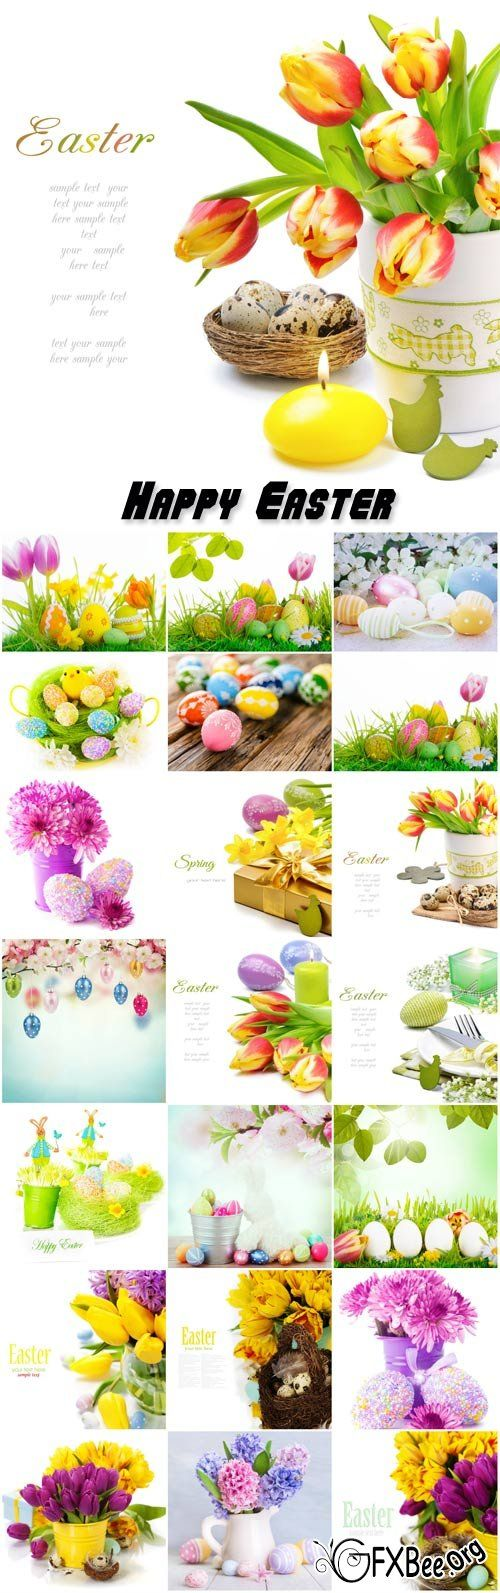 Happy Easter, background Easter compositions